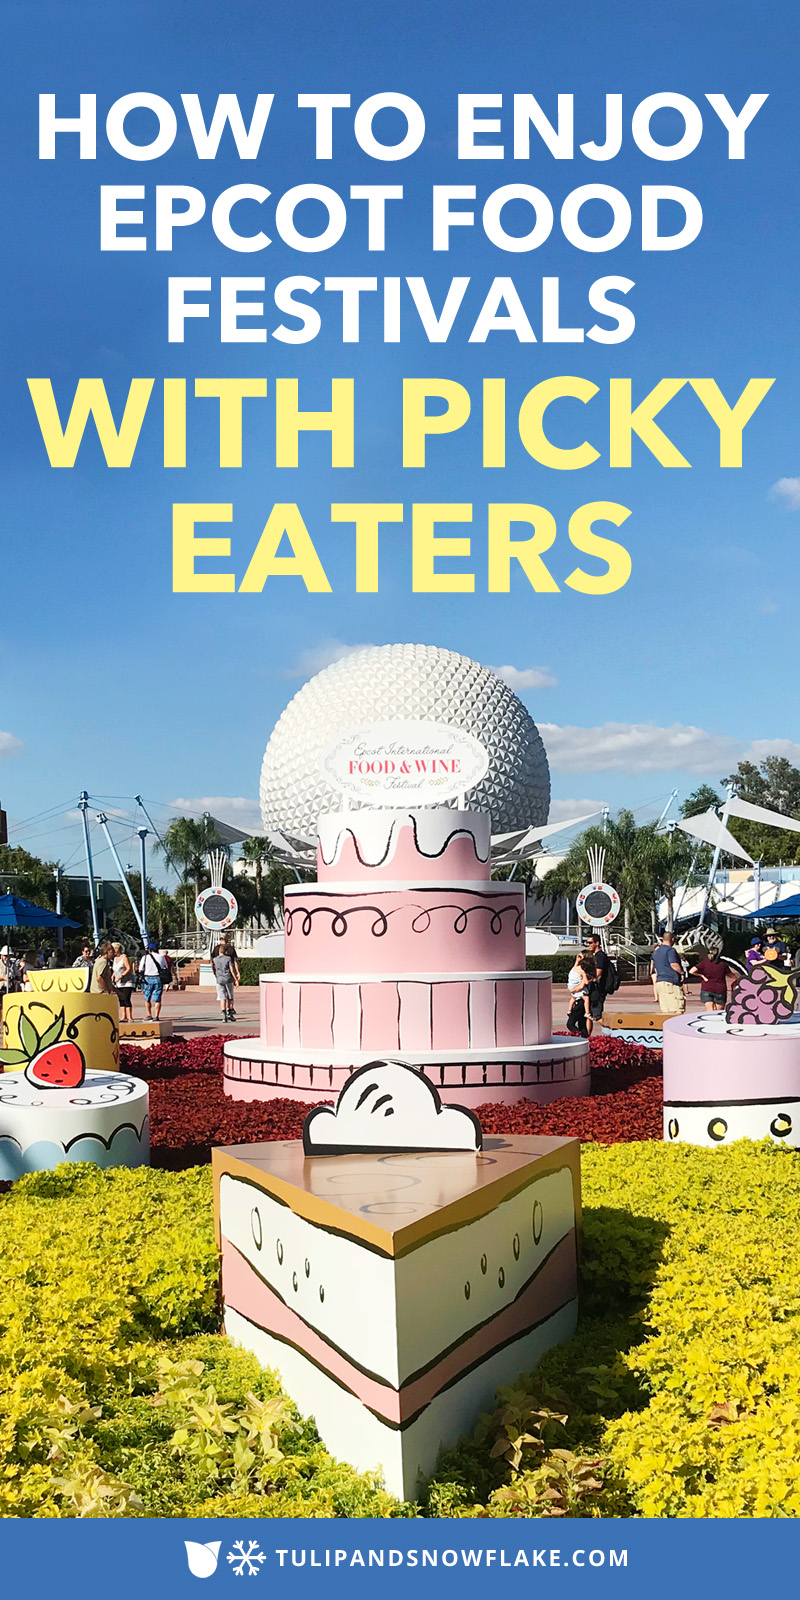 How to enjoy Epcot food festivals with picky eaters